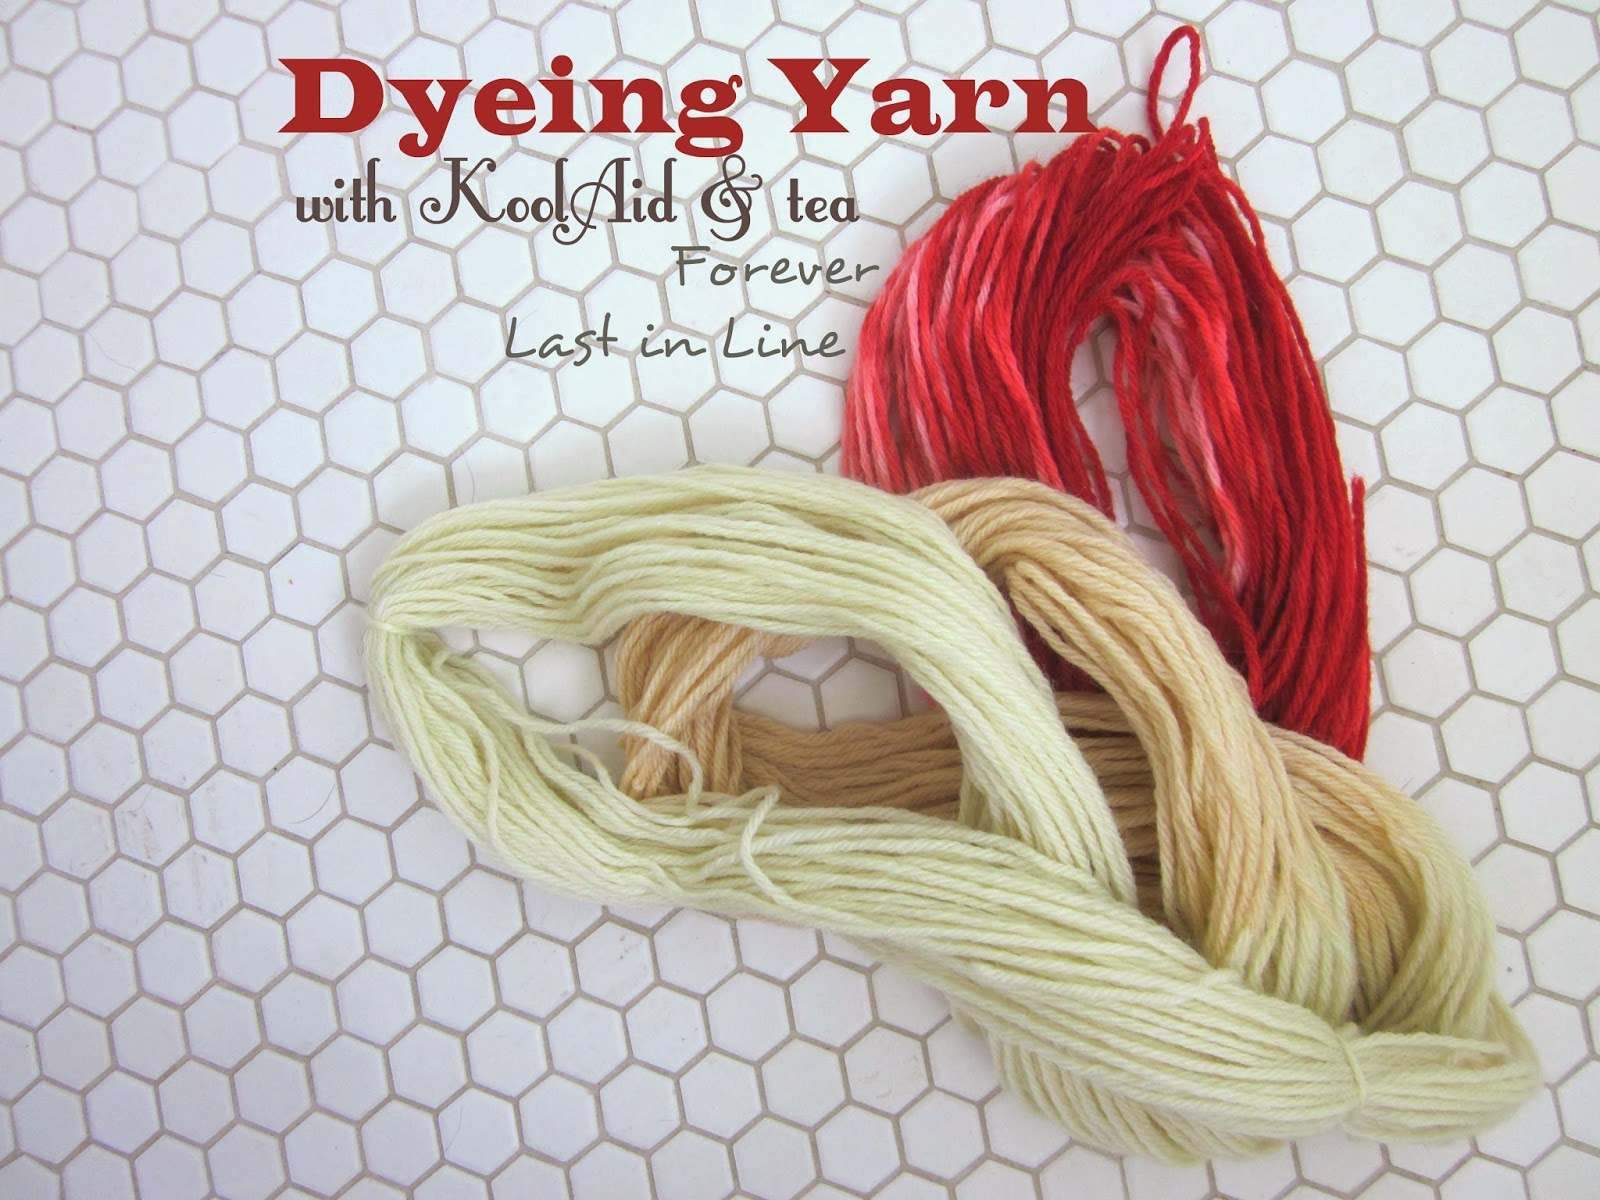 Last in Line: Dyeing Yarn with KoolAid or Tea